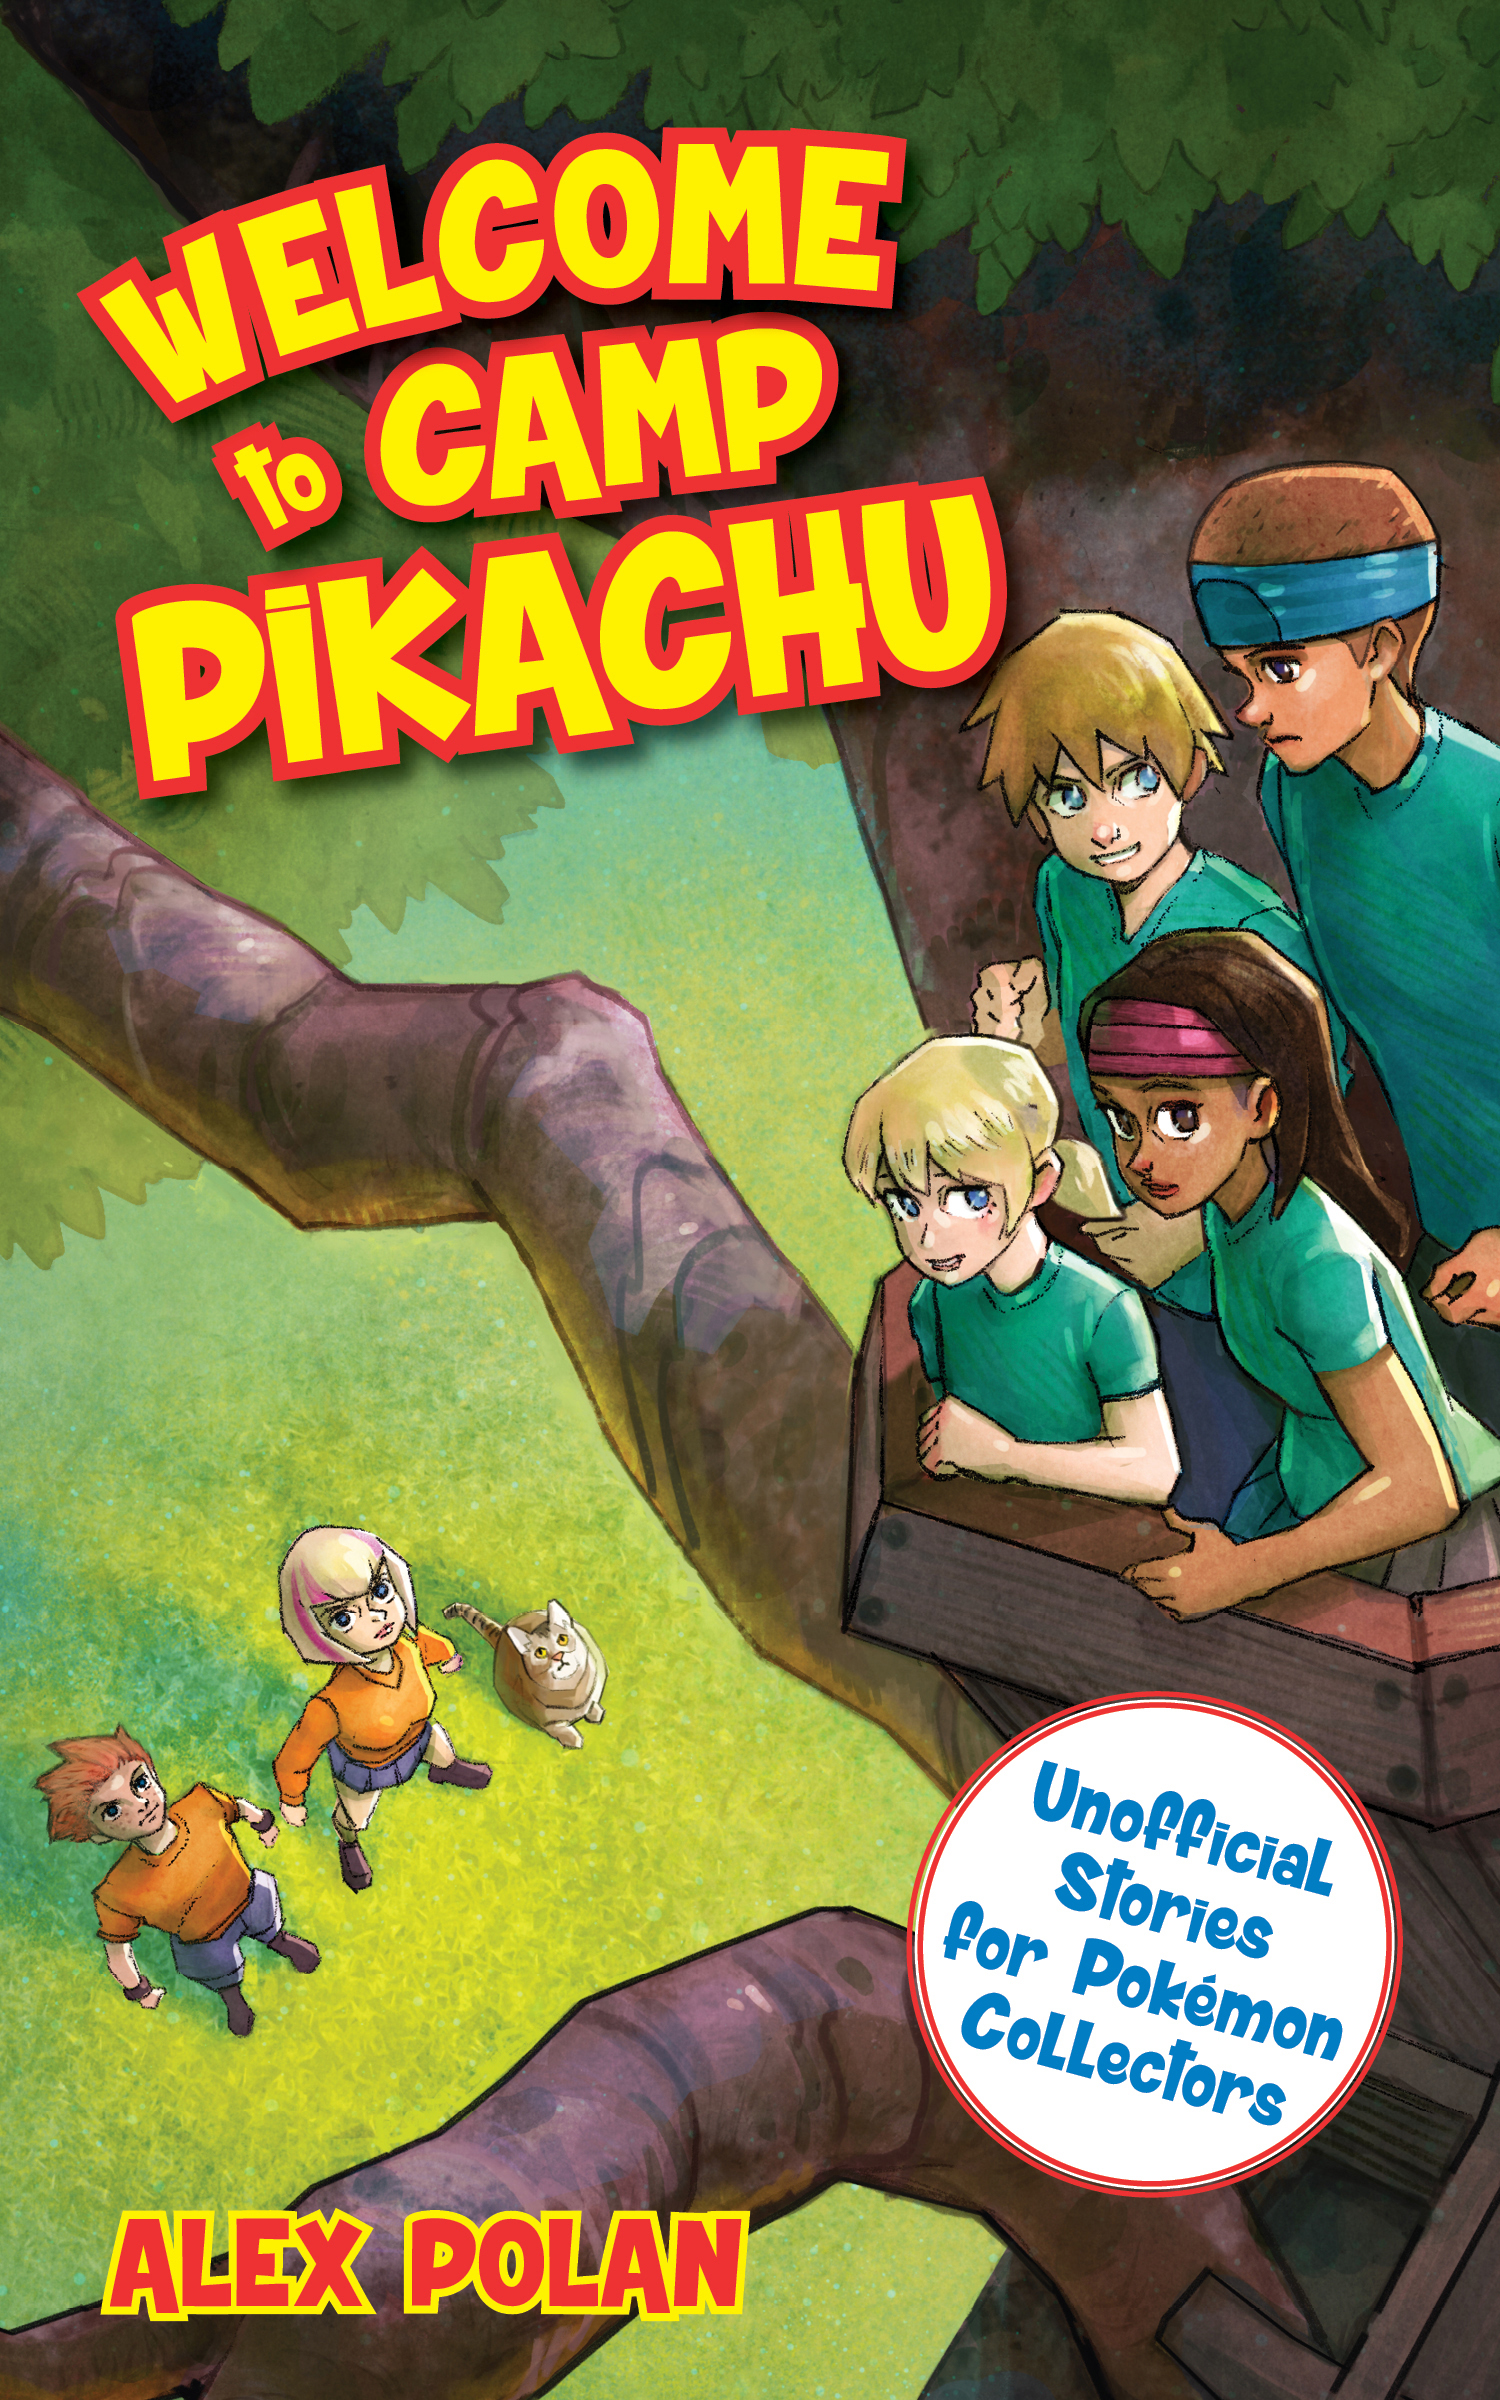 Cover Image of Welcome to Camp Pikachu